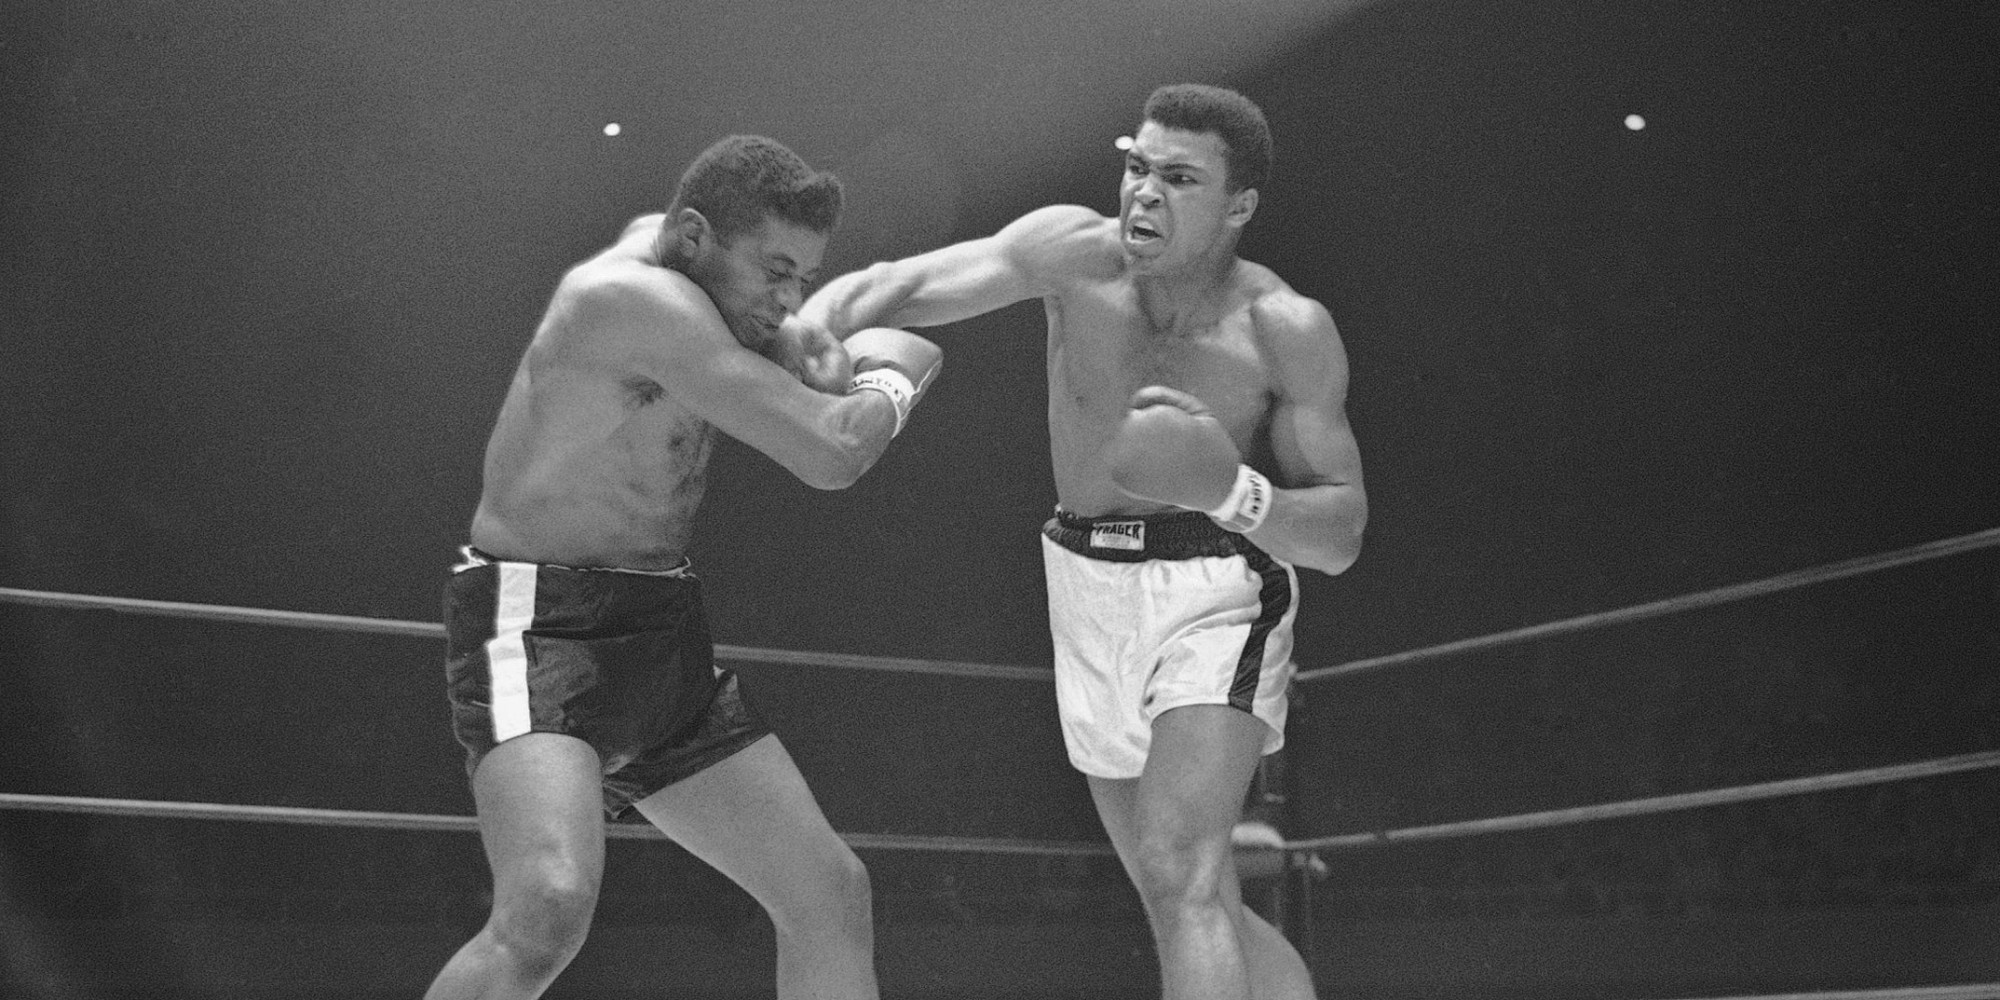 Heavyweight champion Muhammad Ali ( Cassius Clay) moves in with a series of amsshes to the face of challenger Floyd Patterson in the sixth round of their title fight at Las Vegas, Nevada on Nov. 22, 1965. (AP Photo)